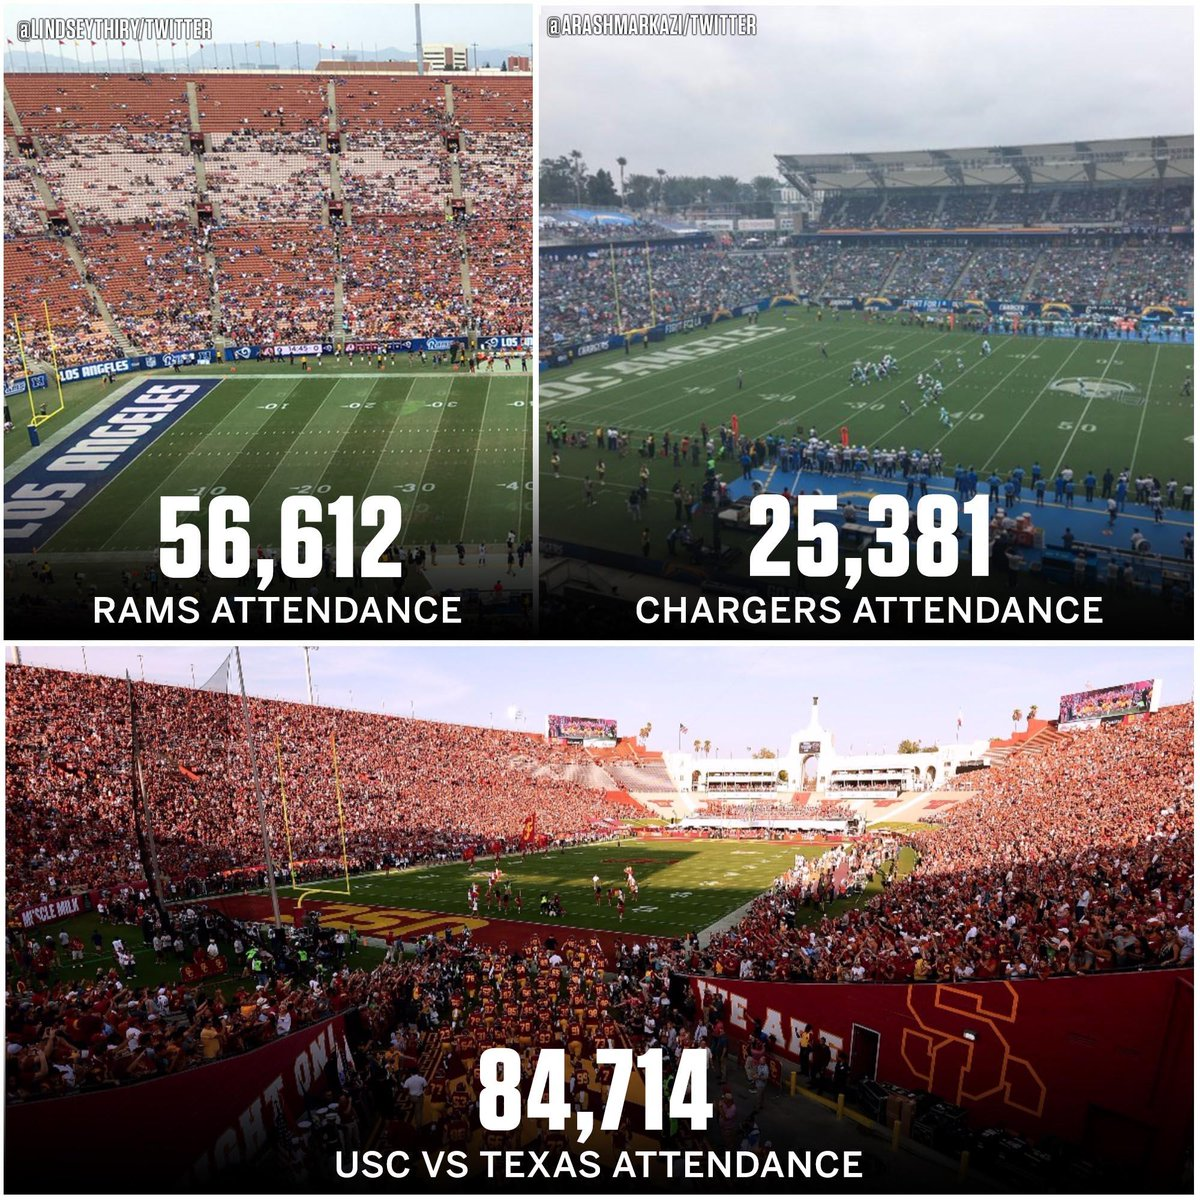 The attendance for the USC game was more than the Chargers and Rams' attendances combined.